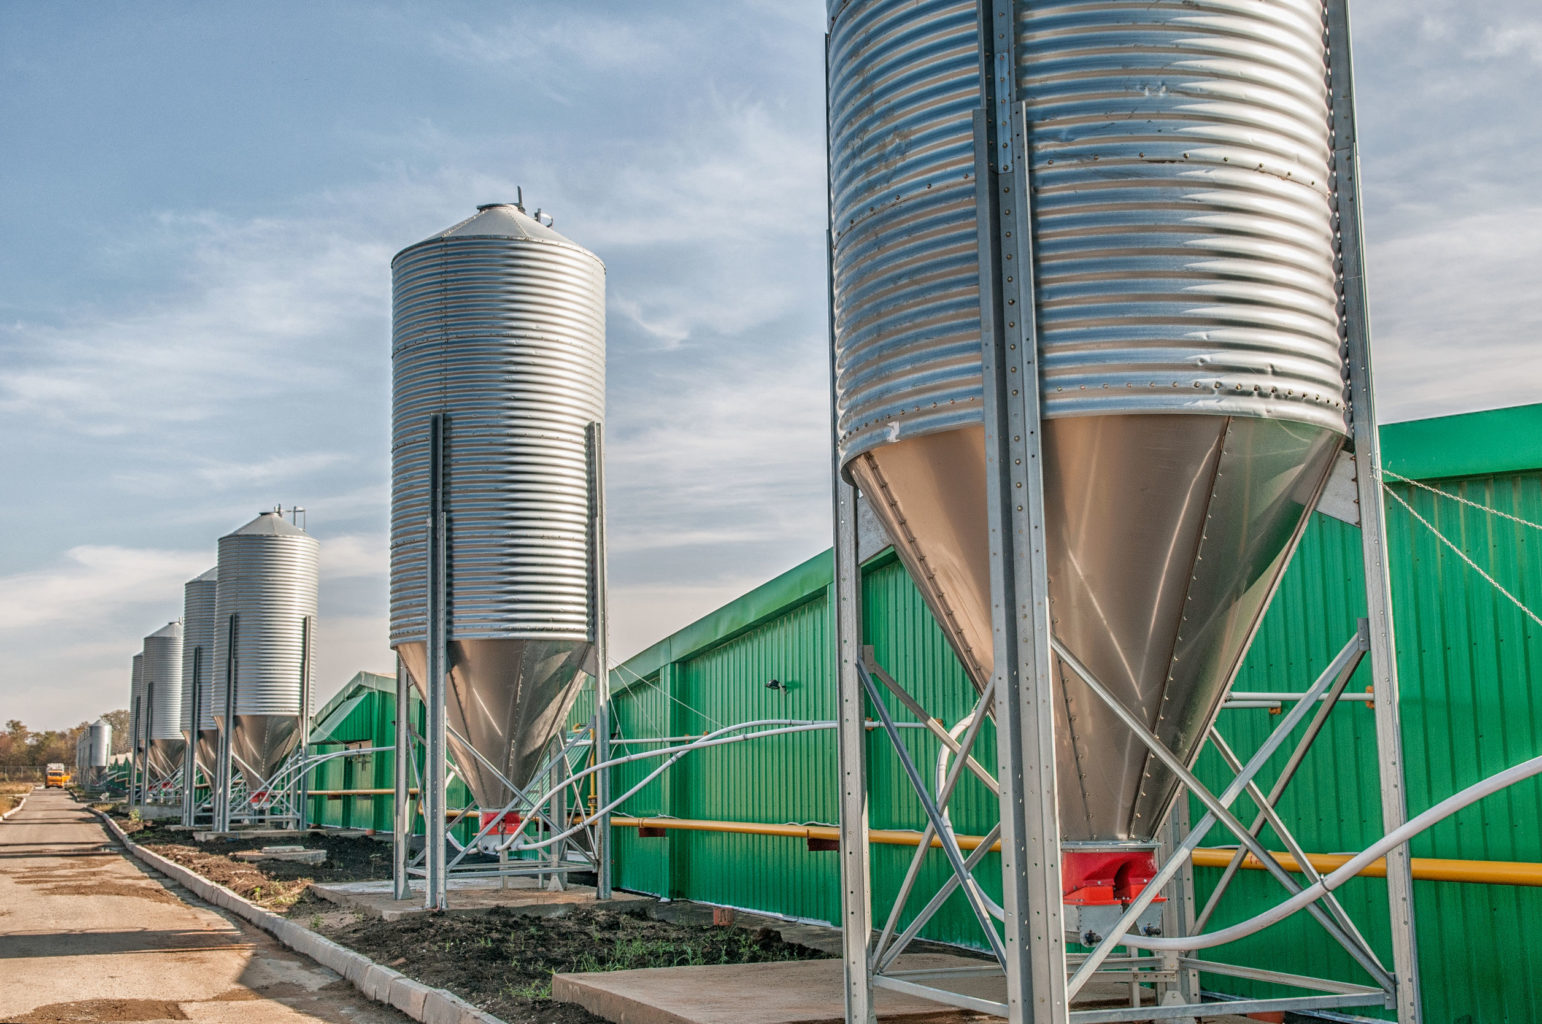 silo level measurement